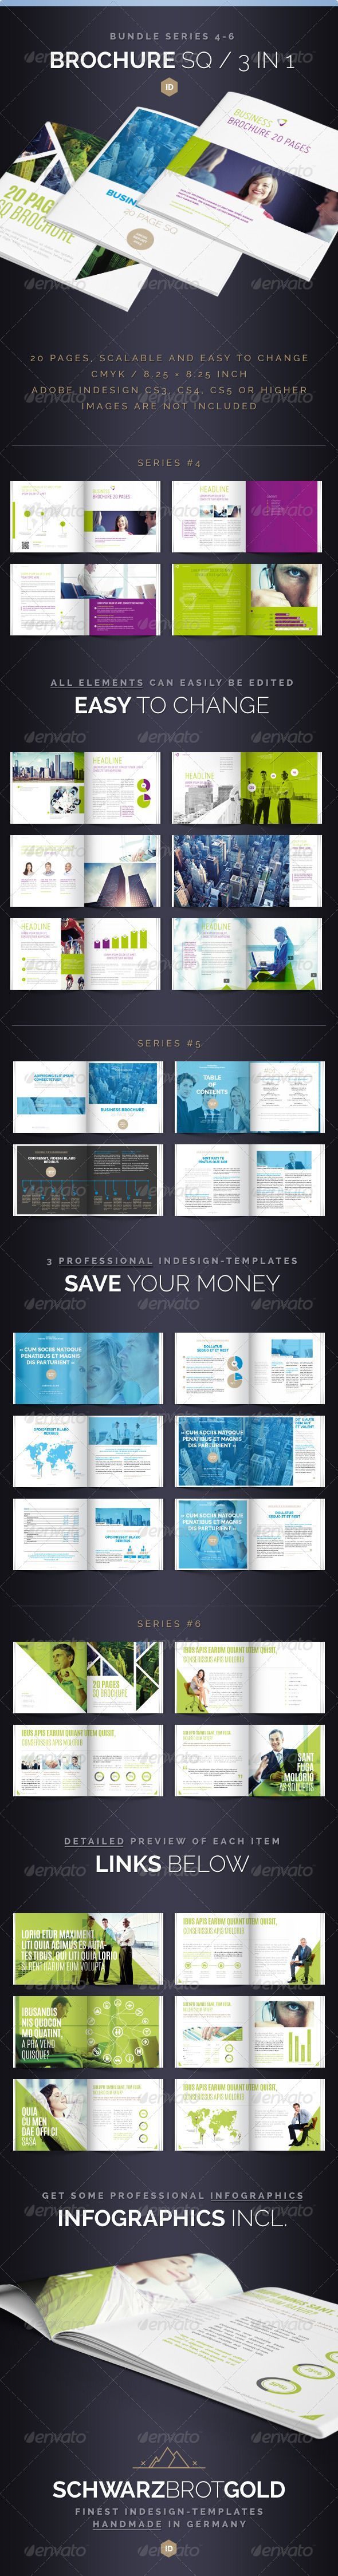 Brochure Bundle Square 20 Pages Series 4-6 .This image is available on GraphicRiver. Brochure Bundle Square 20 Pages Series 4-6 InDesign CS3 / CS4 / CS5